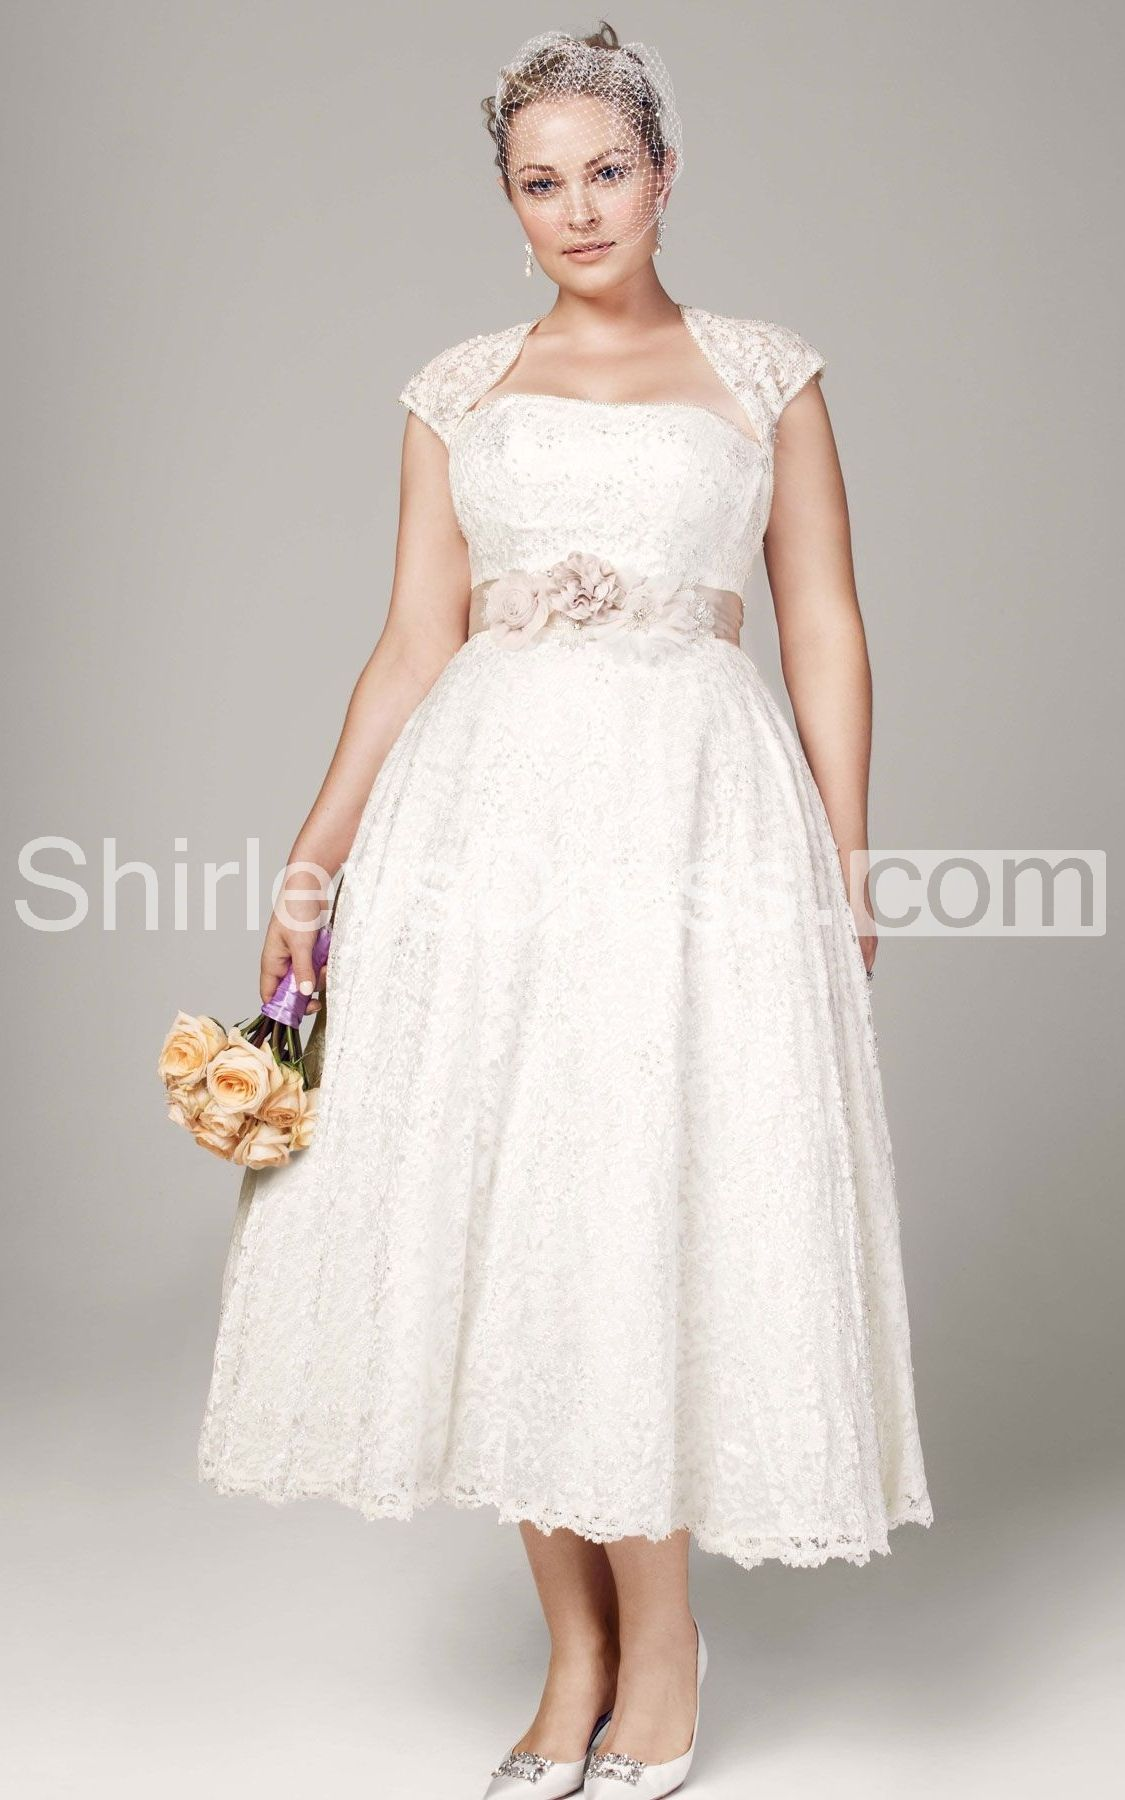 This site seems to have a lot of good reviews for ordering wedding this site seems to have a lot of good reviews for ordering weddingdresses online ombrellifo Images